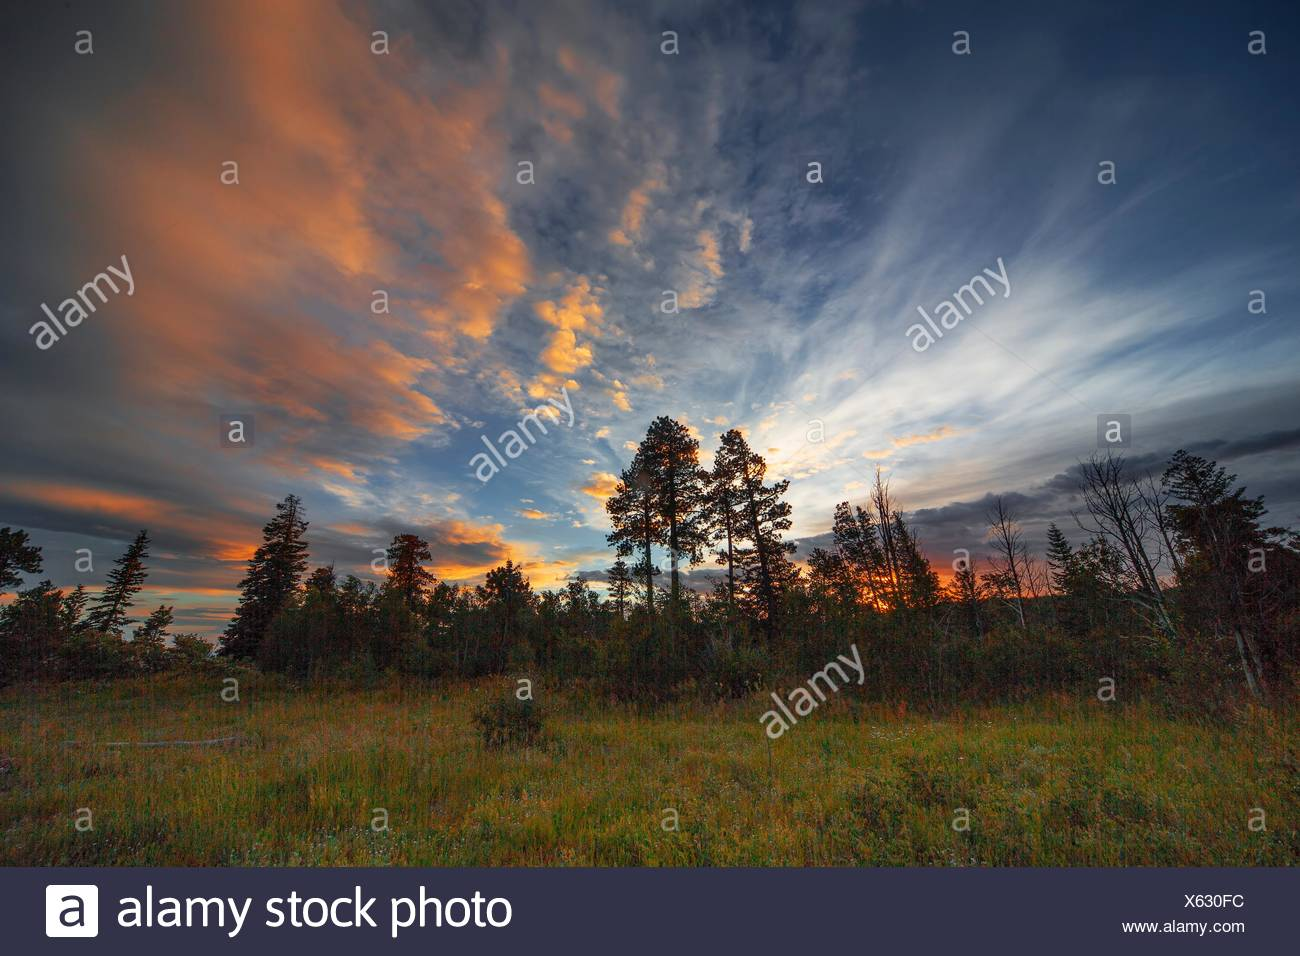 The sun sets behind the pine tree forests of Kaibab National Forest, Arizona. - Stock Image